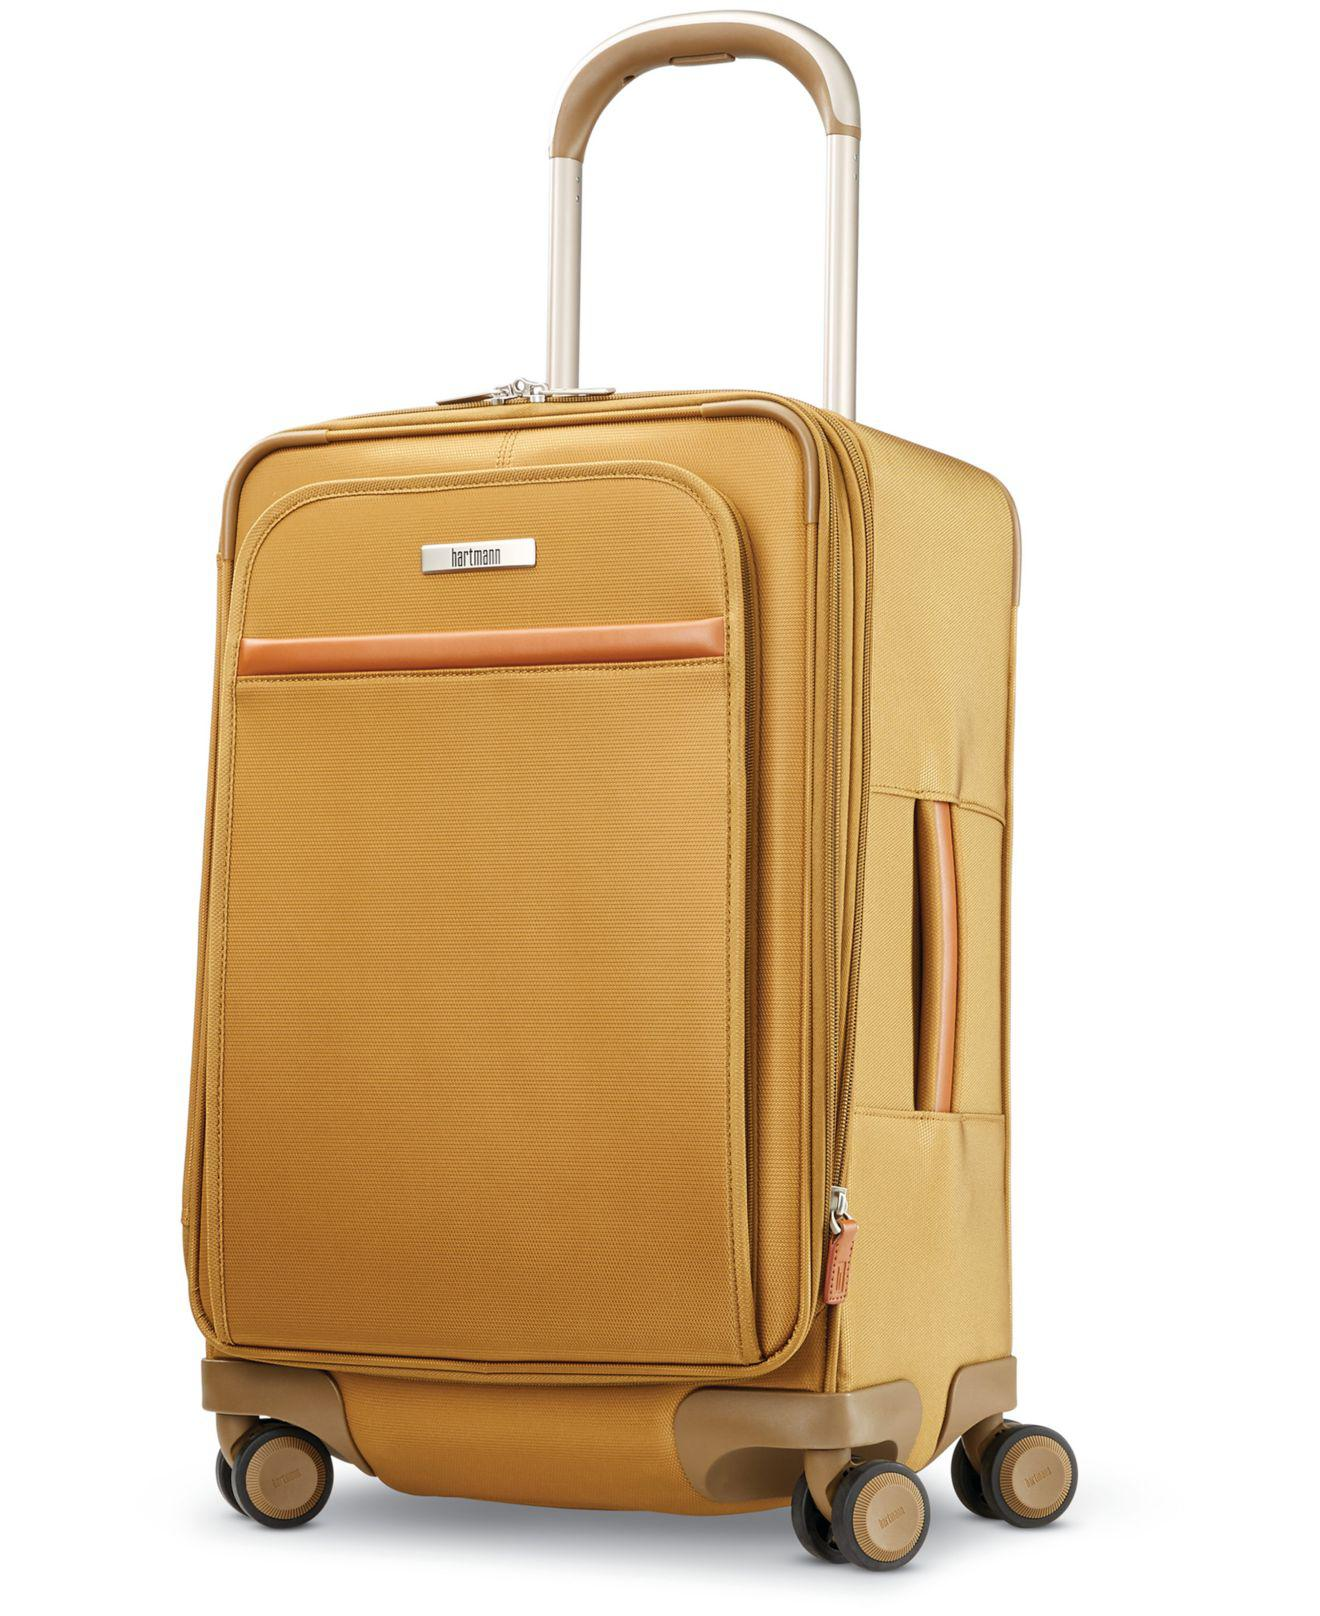 43d1a89930f2 Lyst - Hartmann Metropolitan 2 Global Carry-on Expandable Spinner ...